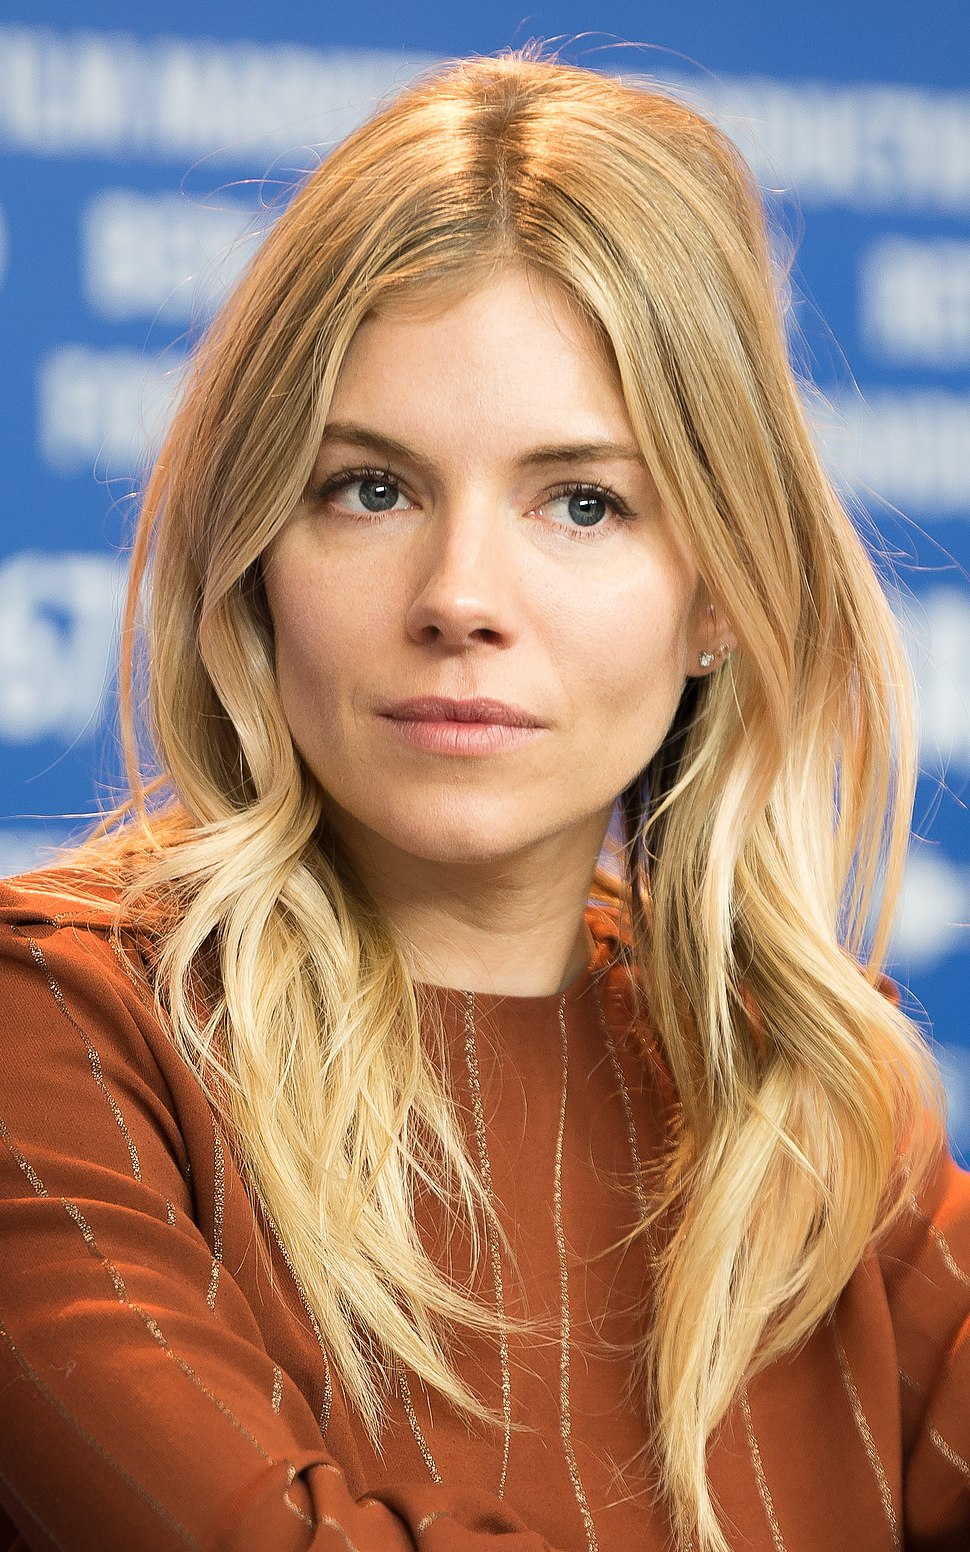 MJK34388 Sienna Miller (The Lost City Of Z, Berlinale 2017)